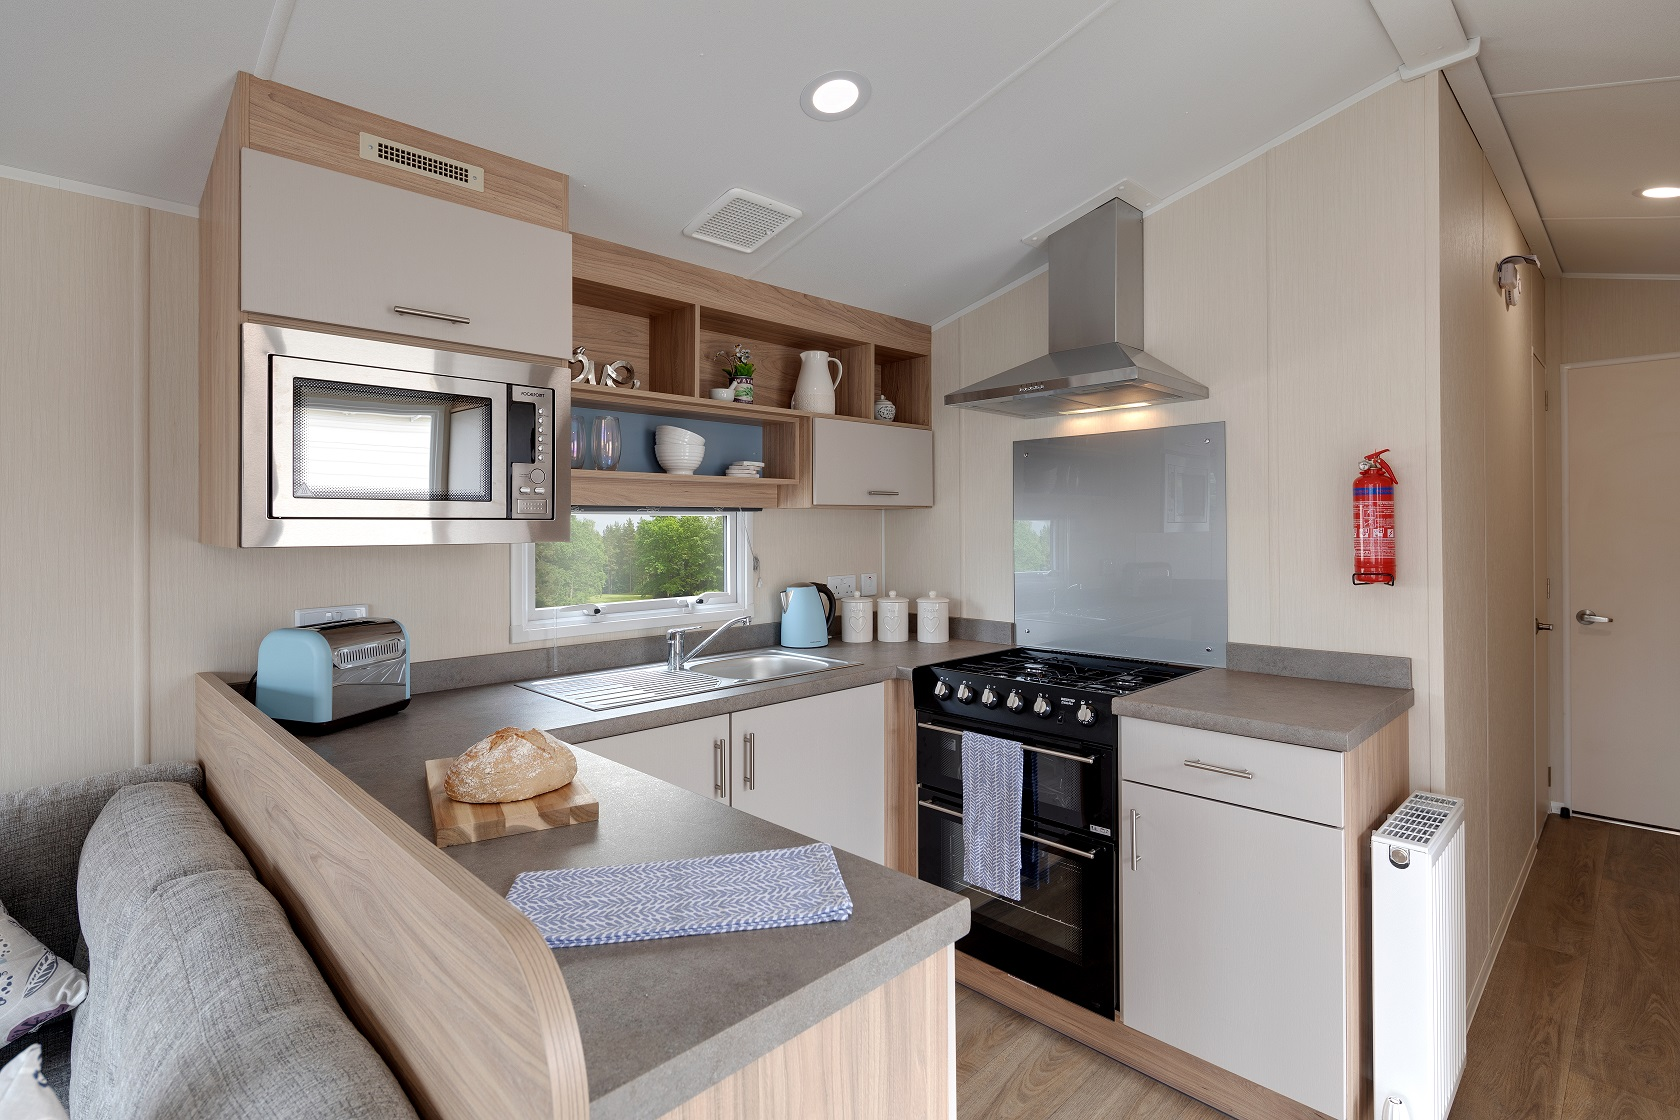 Willerby Linwood: New Static Caravans and Holiday Homes for Sale, Langley Moor, Durham Large Image 3